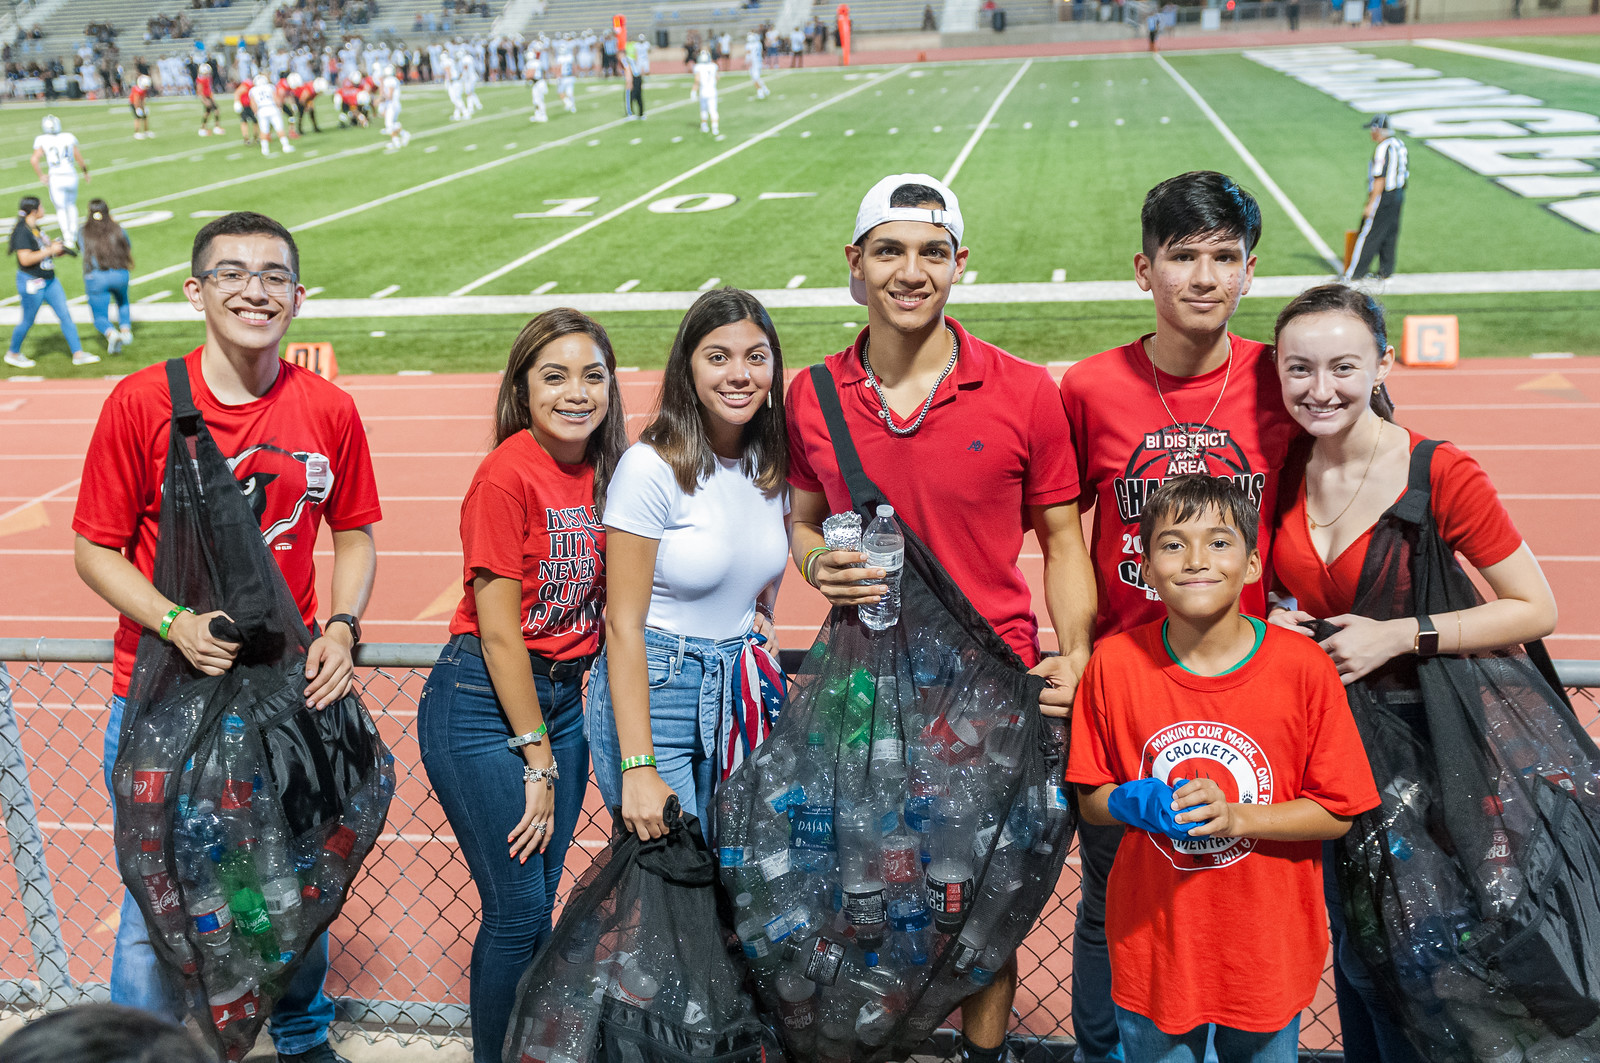 HCISD students create first-of-its-kind recycling program